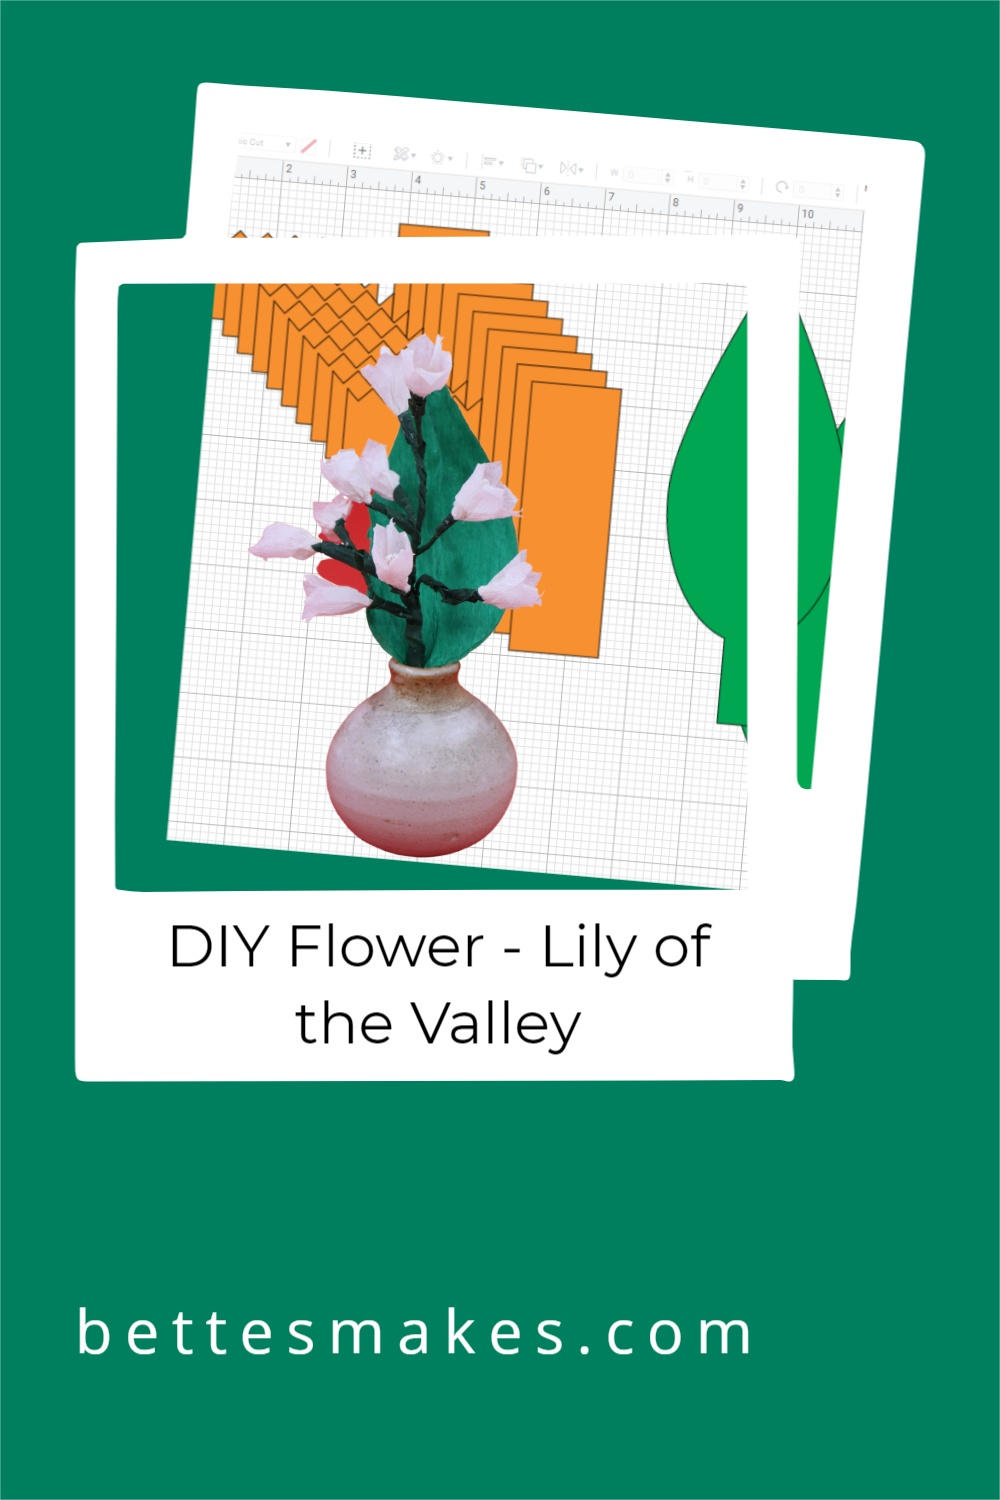 How to Make a DIY Paper Flower Lily of the Valley